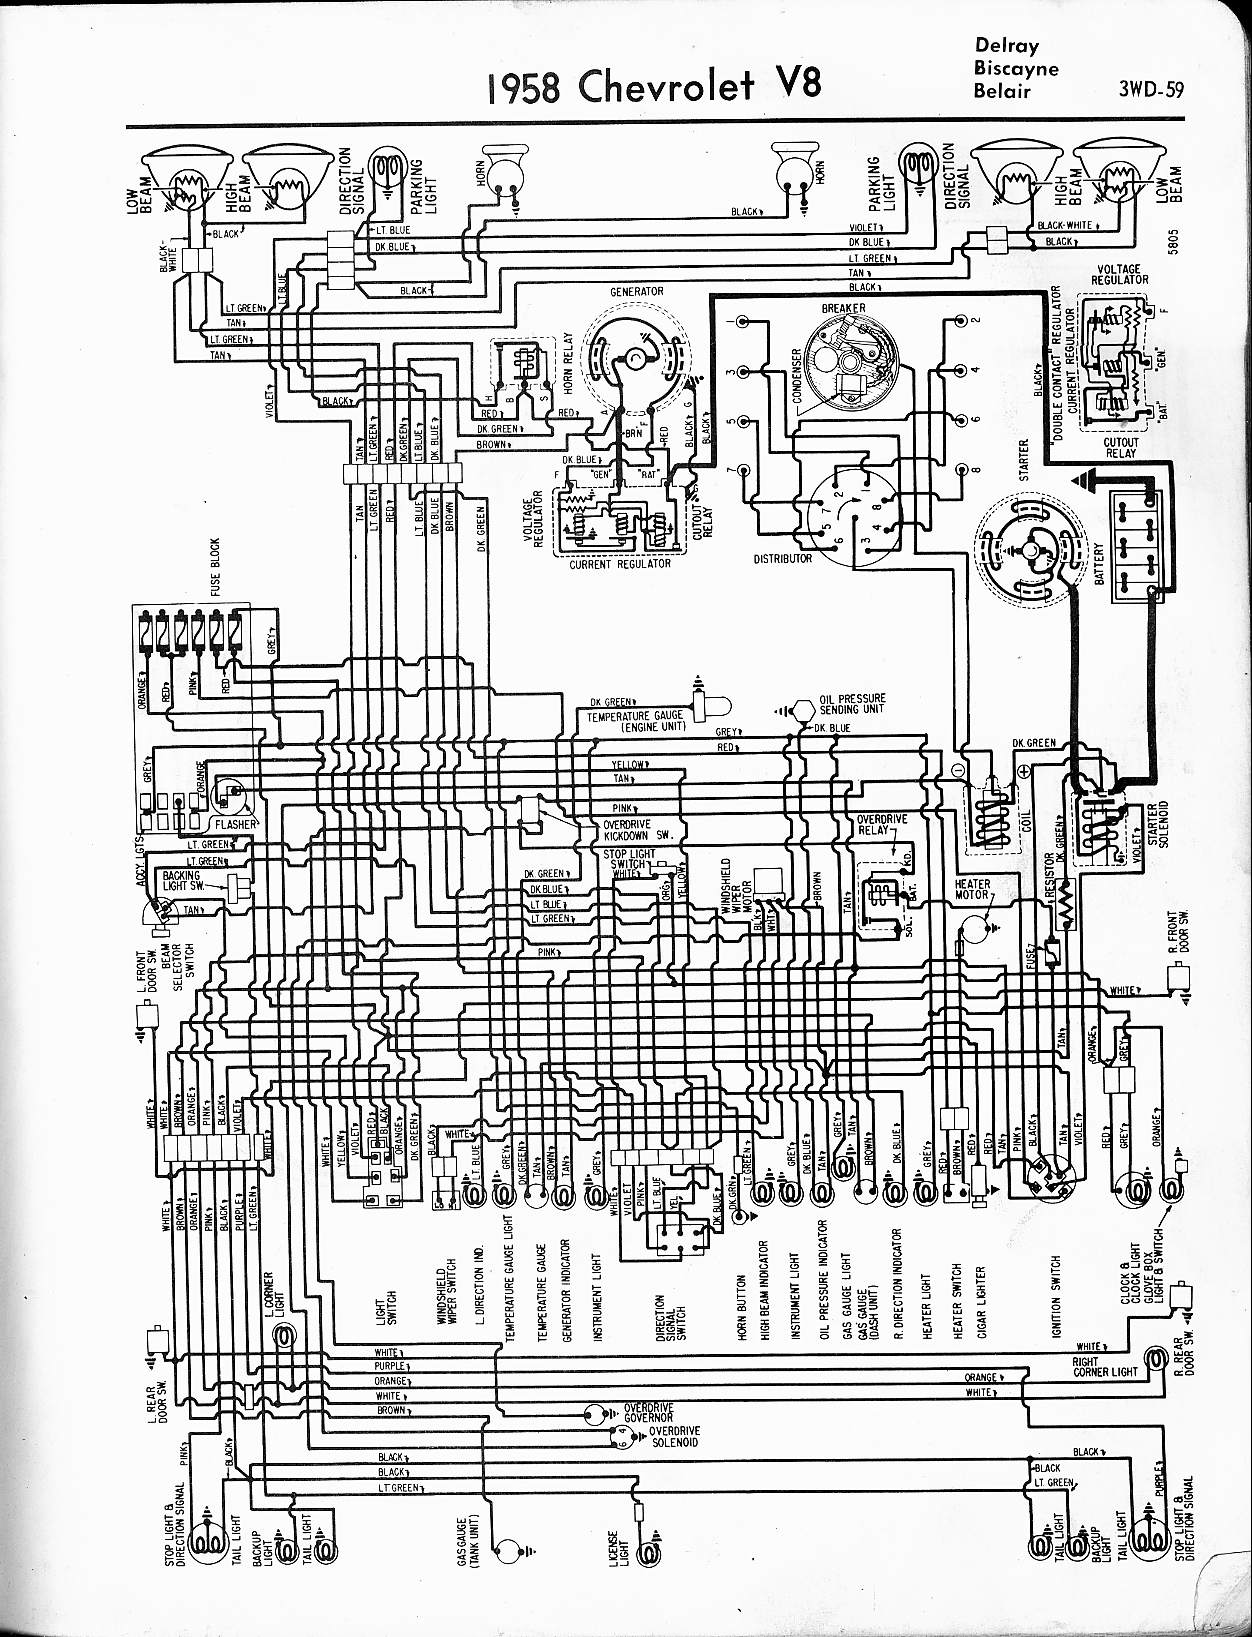 57 65 chevy wiring diagrams rh oldcarmanualproject com 1960 chevrolet wiring diagram 1960 chevy truck wire diagram